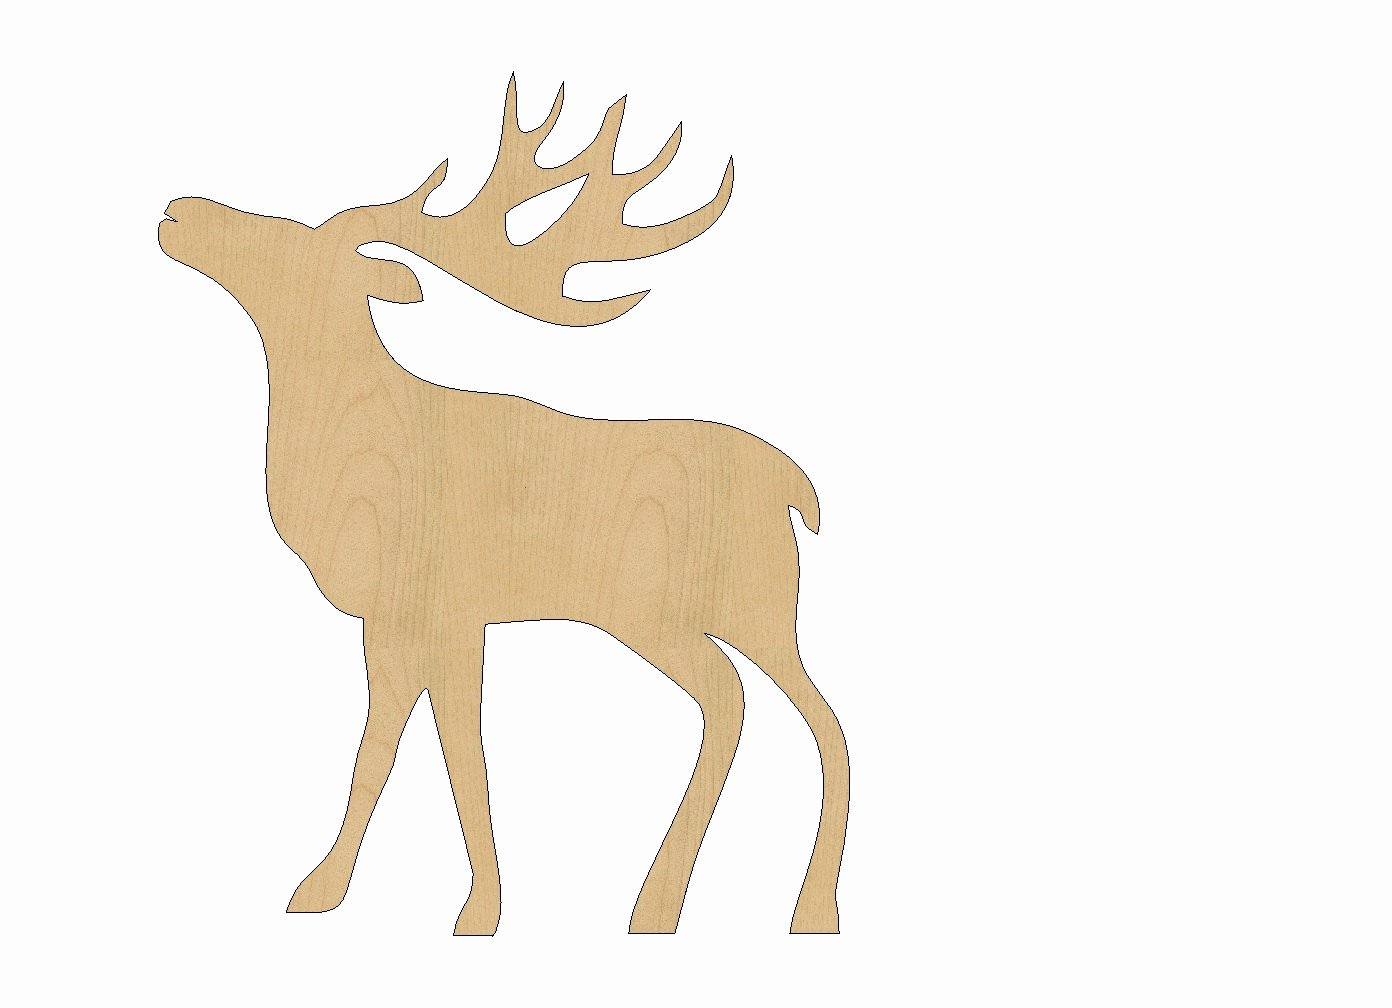 Reindeer Cut Out Pattern Lovely Reindeer Cutout Shape Laser Cut Unfinished Wood Shapes Craft